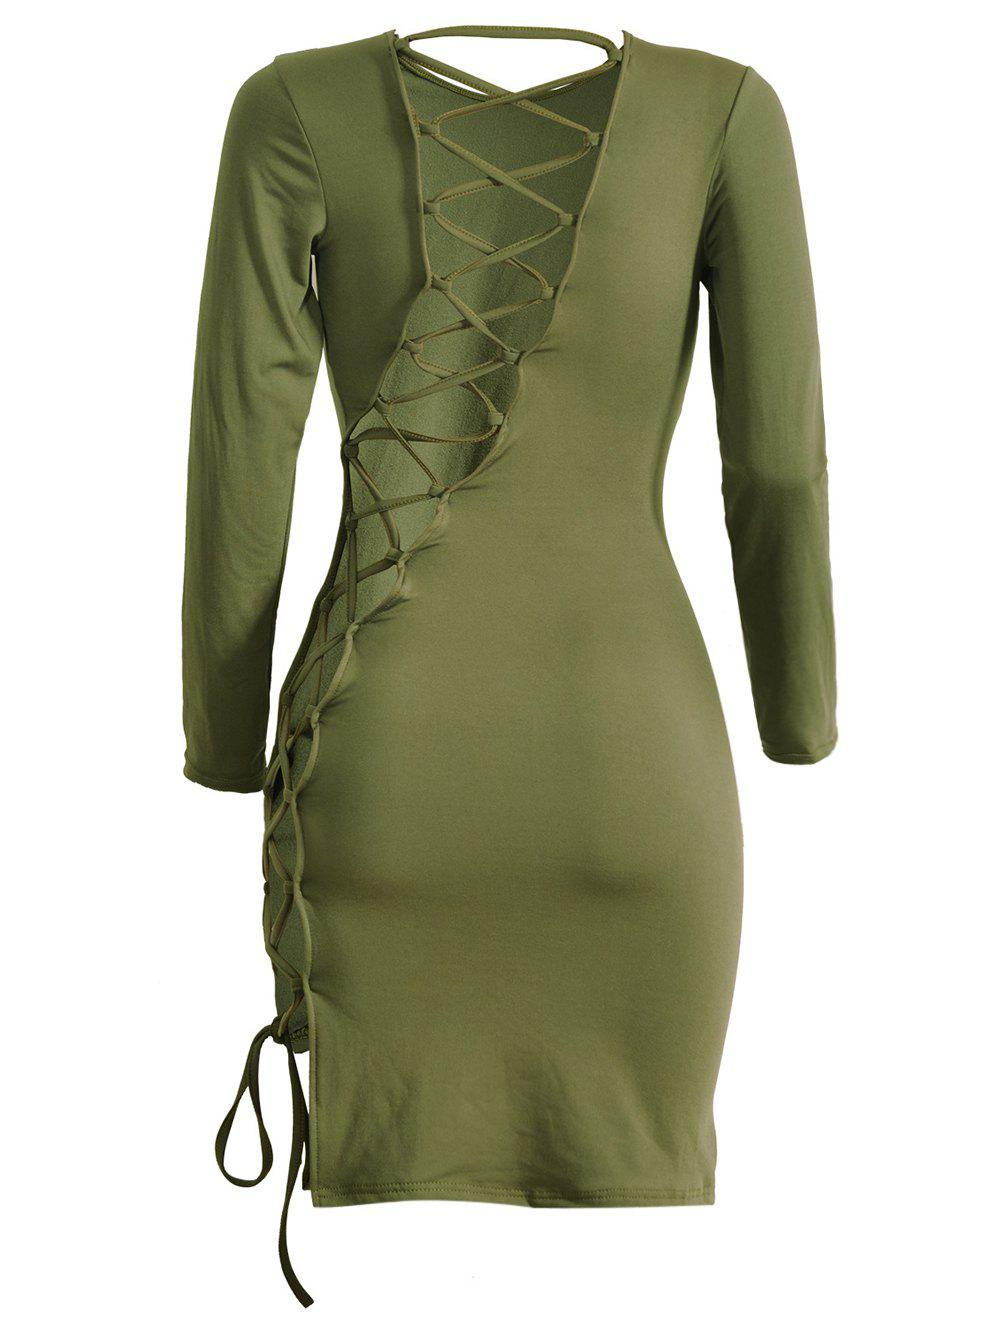 Lattice Cut Out Long Sleeve Sheath Dress - ARMY GREEN XL